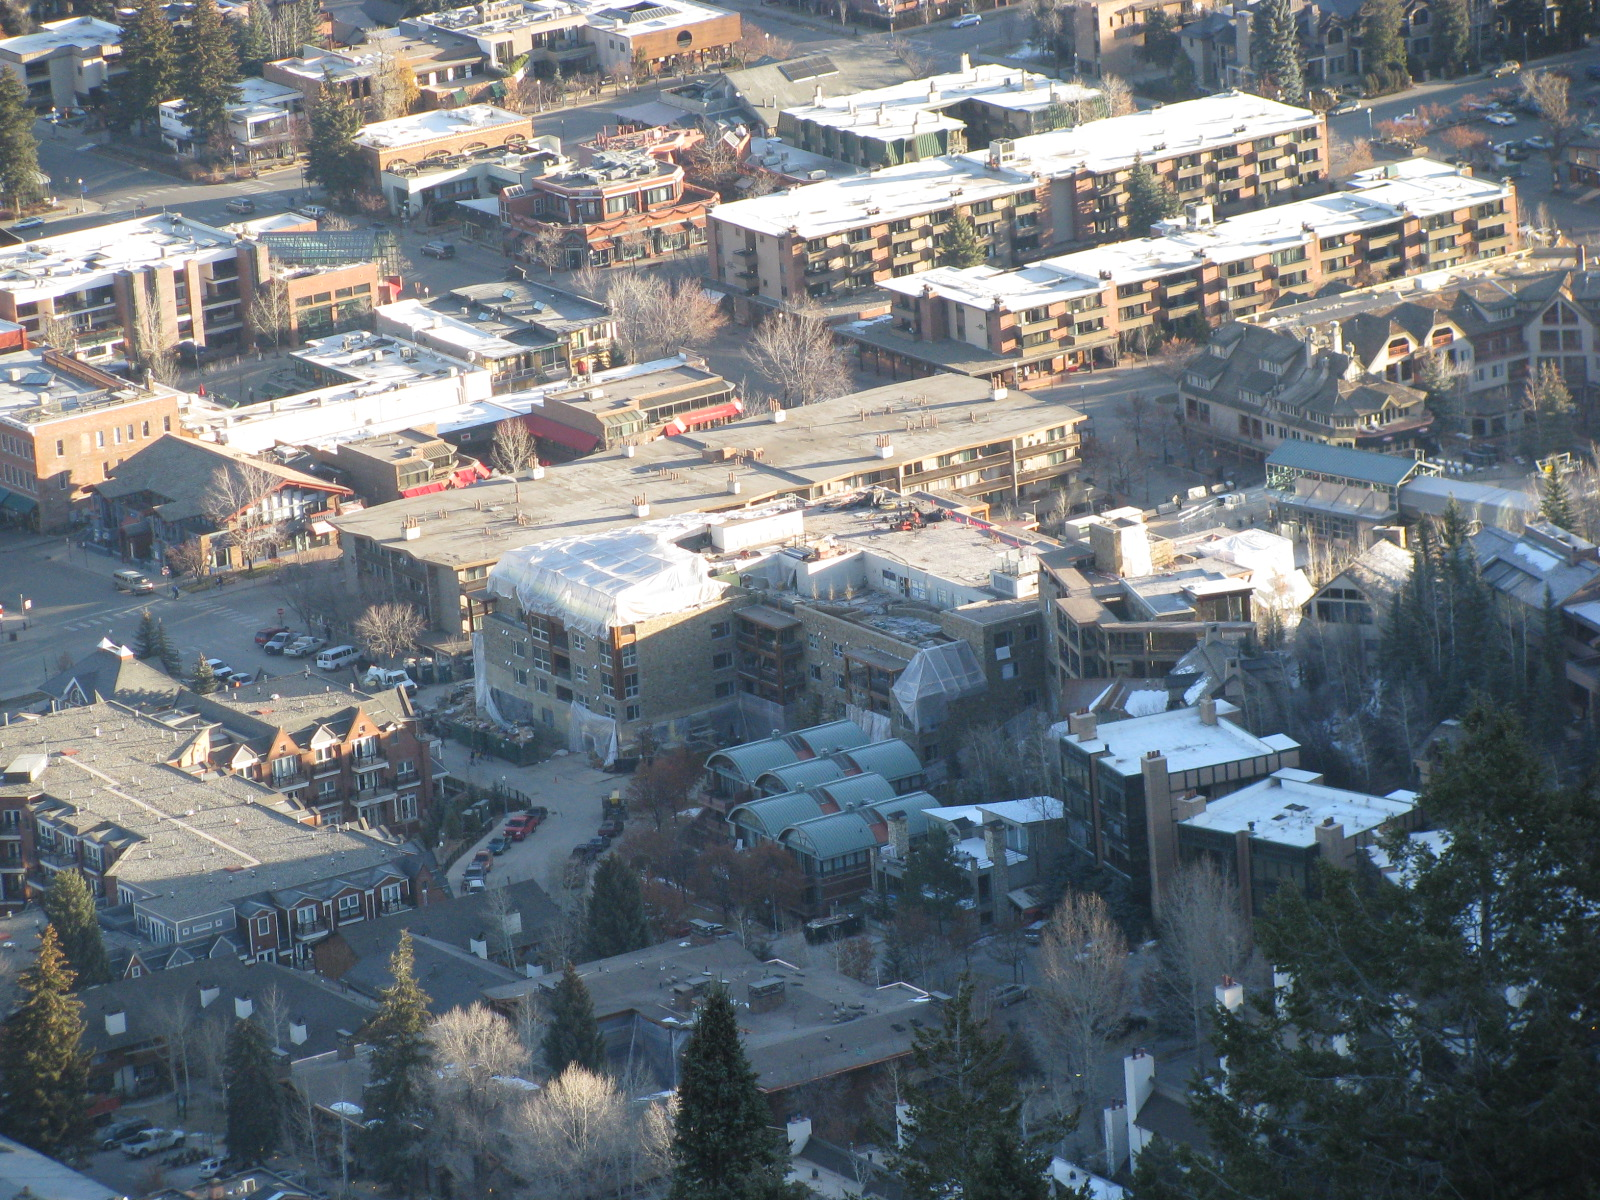 View of the jobsite from up on Aspen Mountain